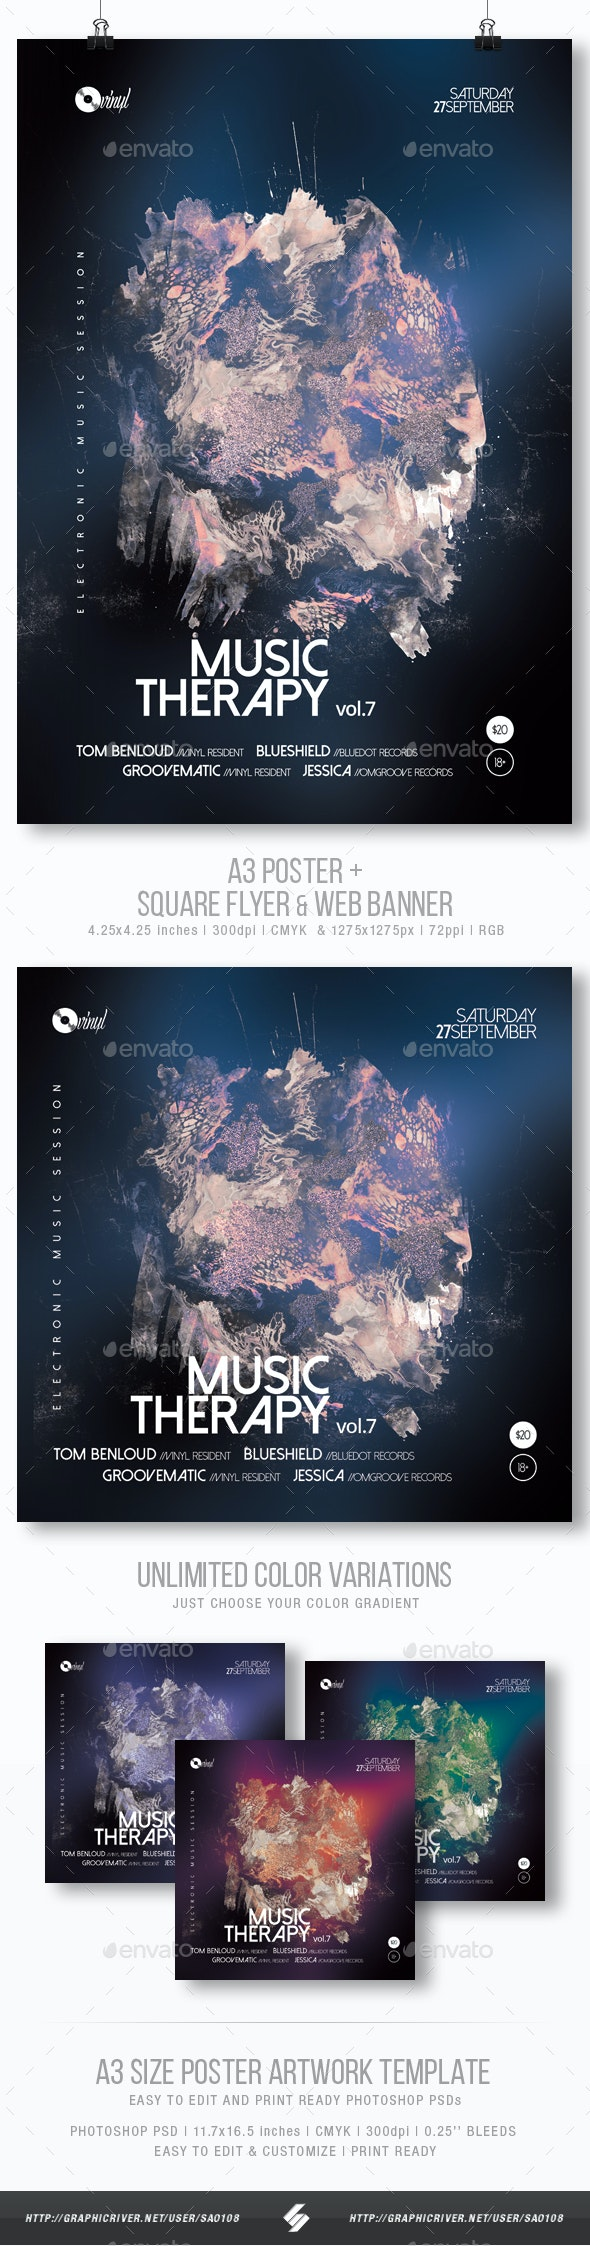 Music Therapy vol.7 - Abstract Party Flyer / Poster Template A3 - Clubs & Parties Events